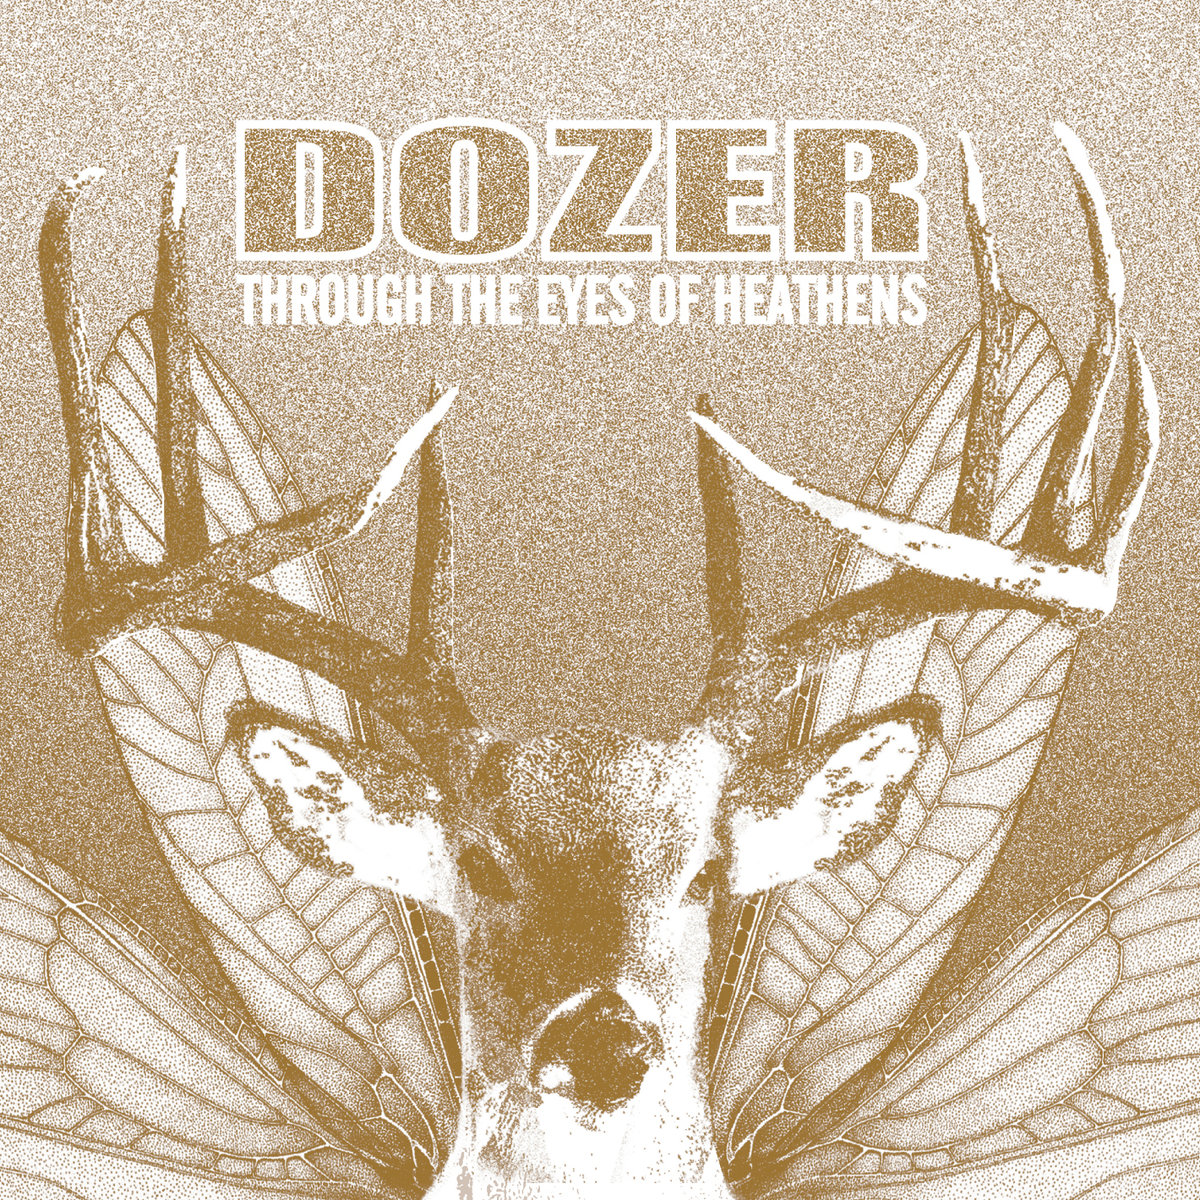 dozer through the eyes of heathens